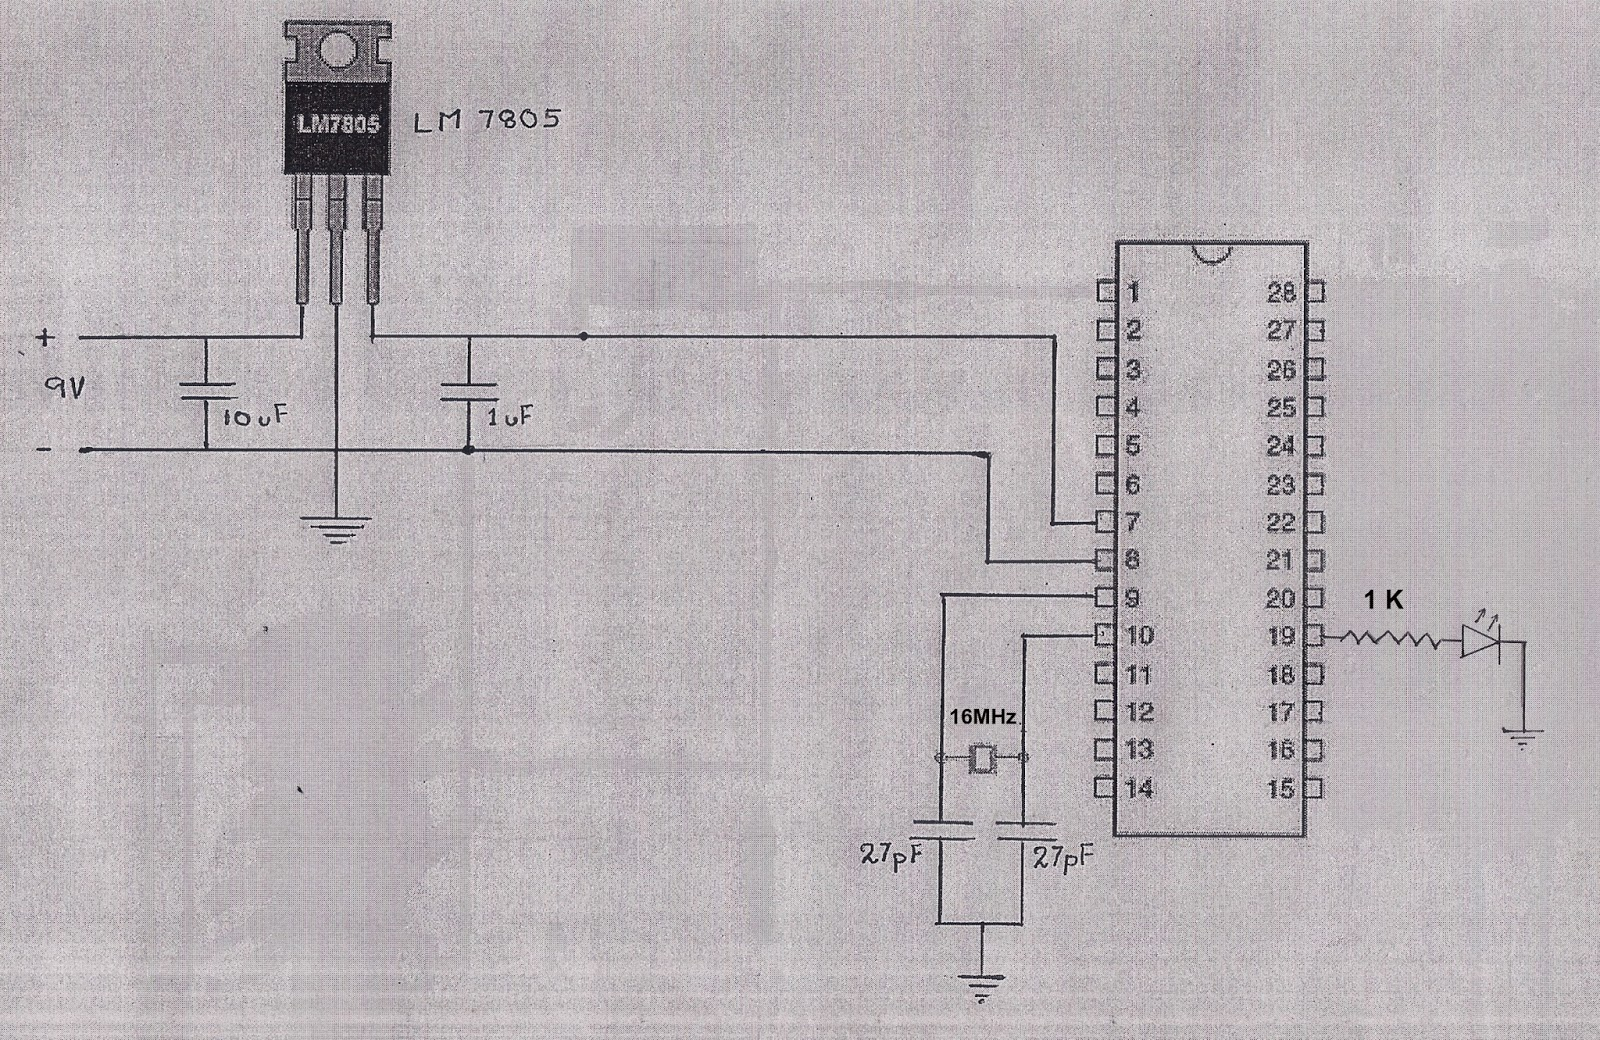 How To Use Atmega Microcontroller From Arduino Board On